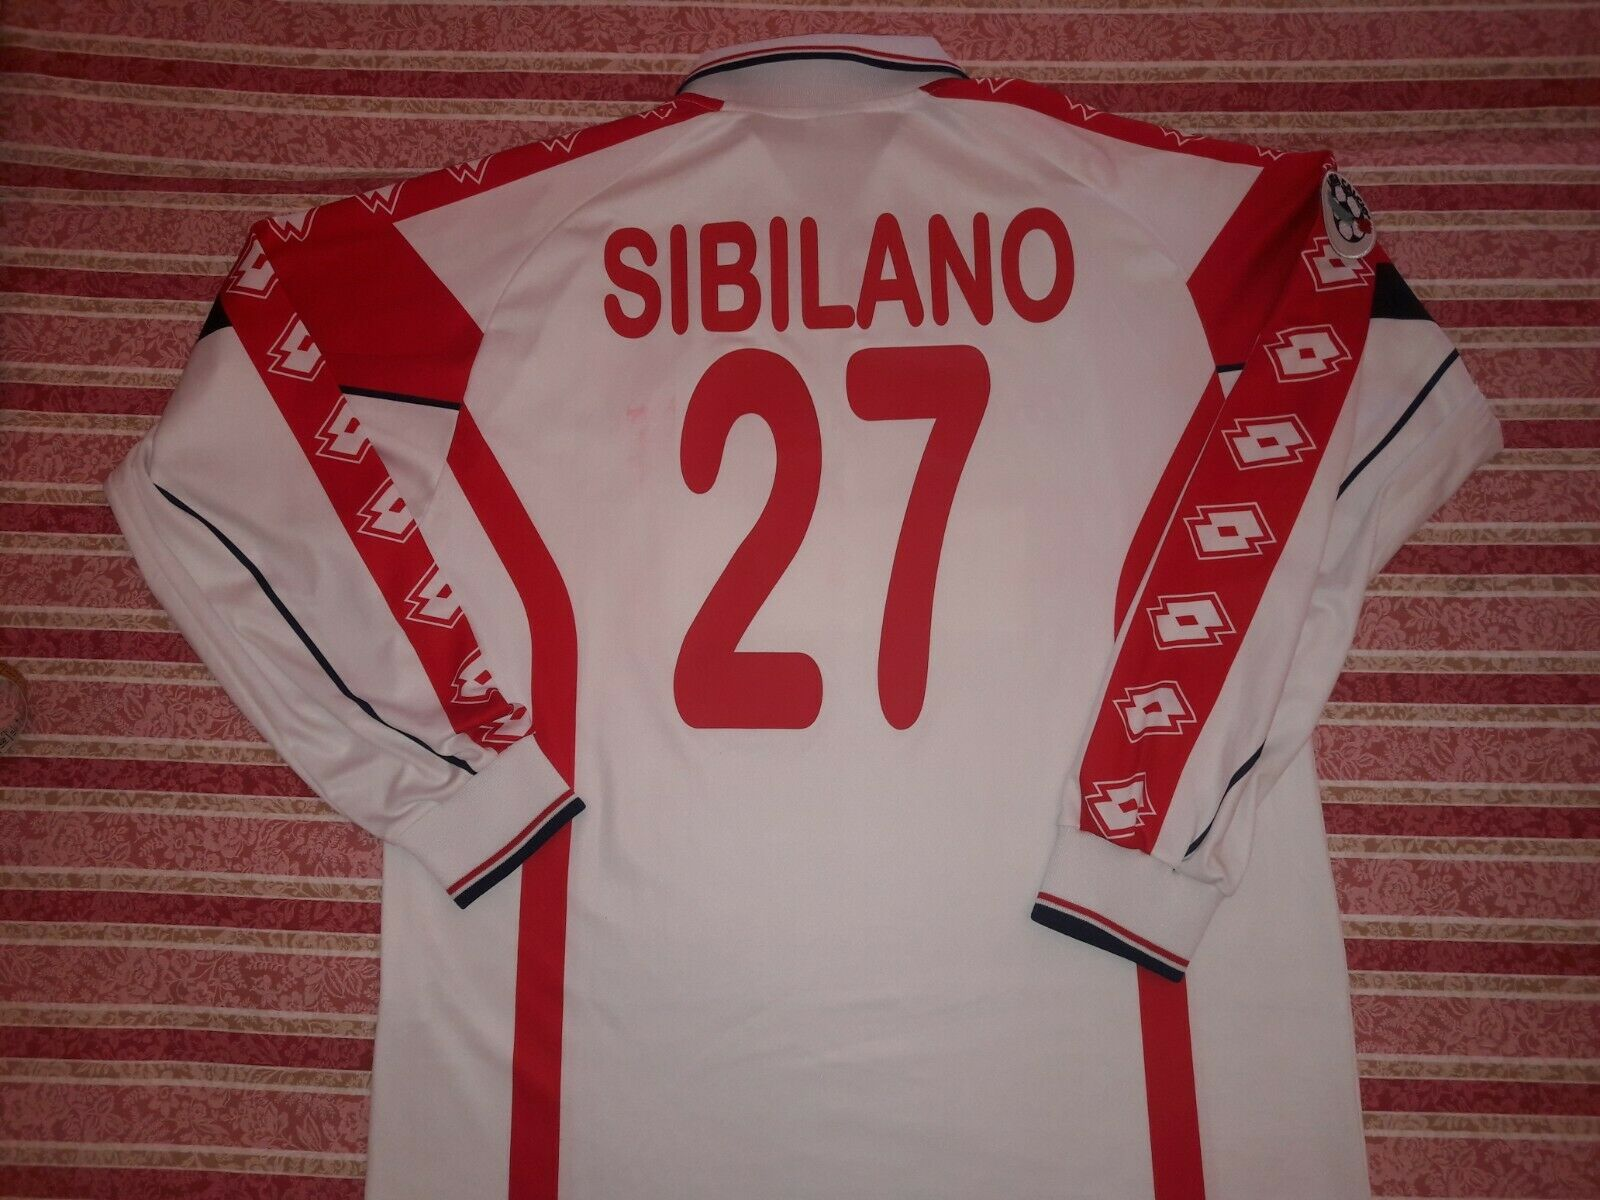 Maglia BARI 2000 2001 SIBILANO INDOSSATA  AS BARI MATCH WORN SHIRT by SIBILANO